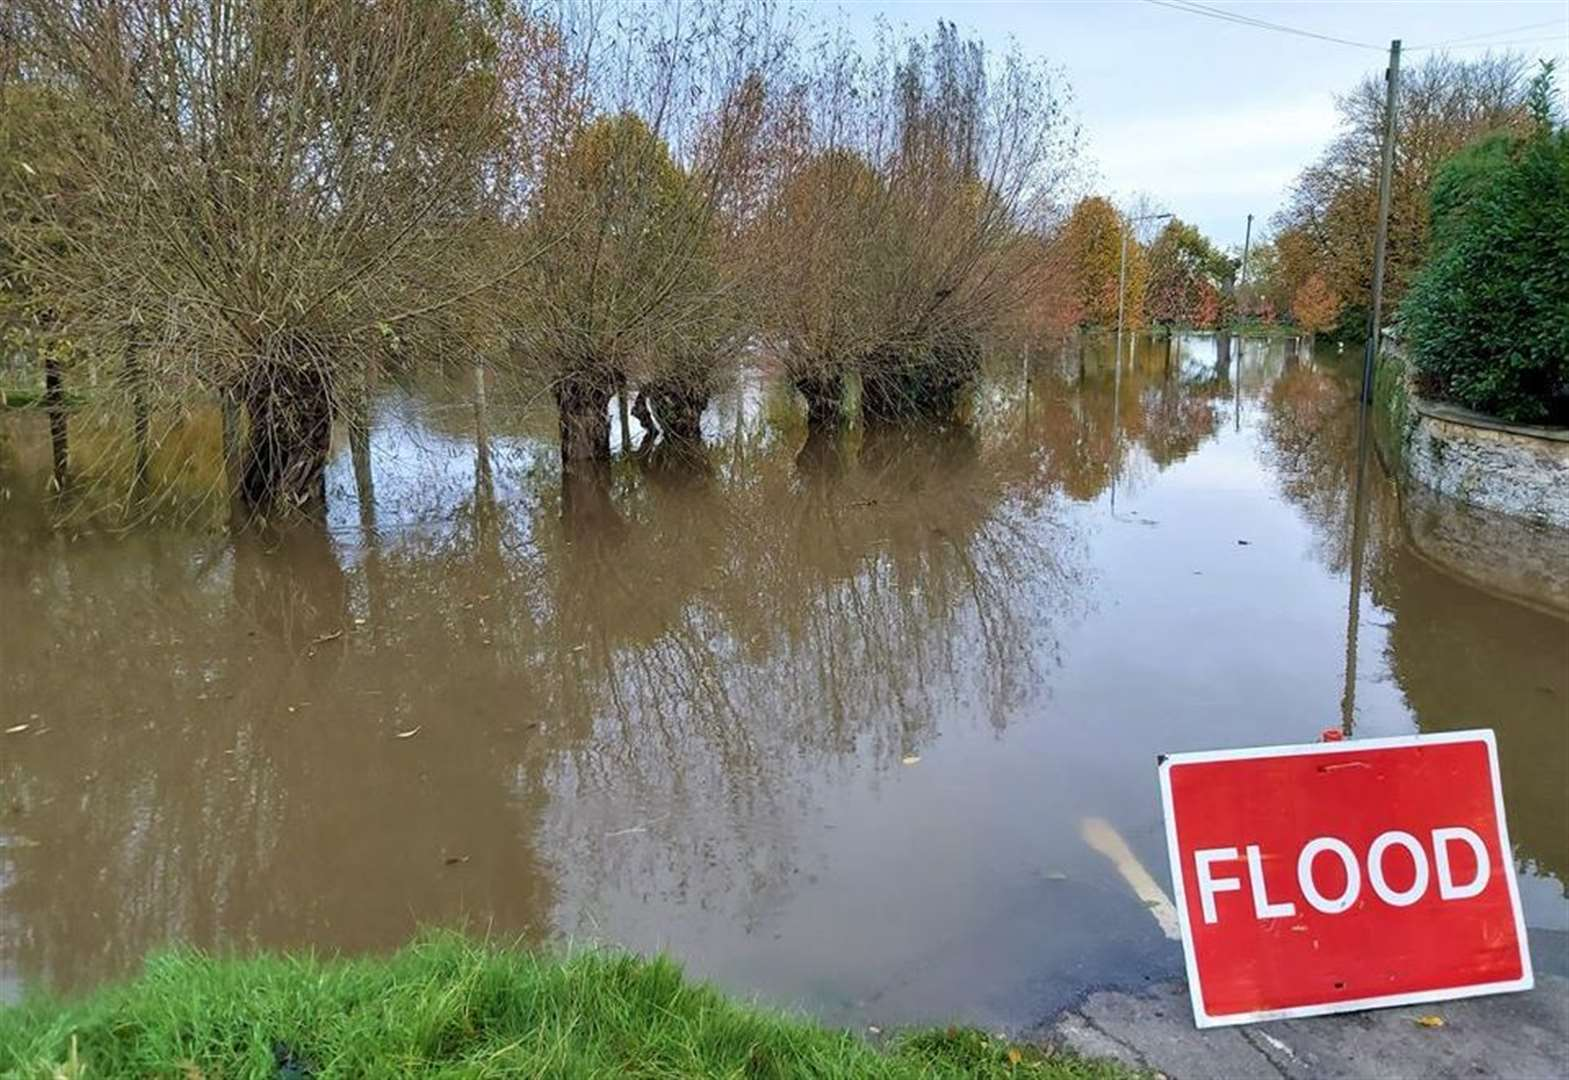 Support for residents and businesses affected by flooding